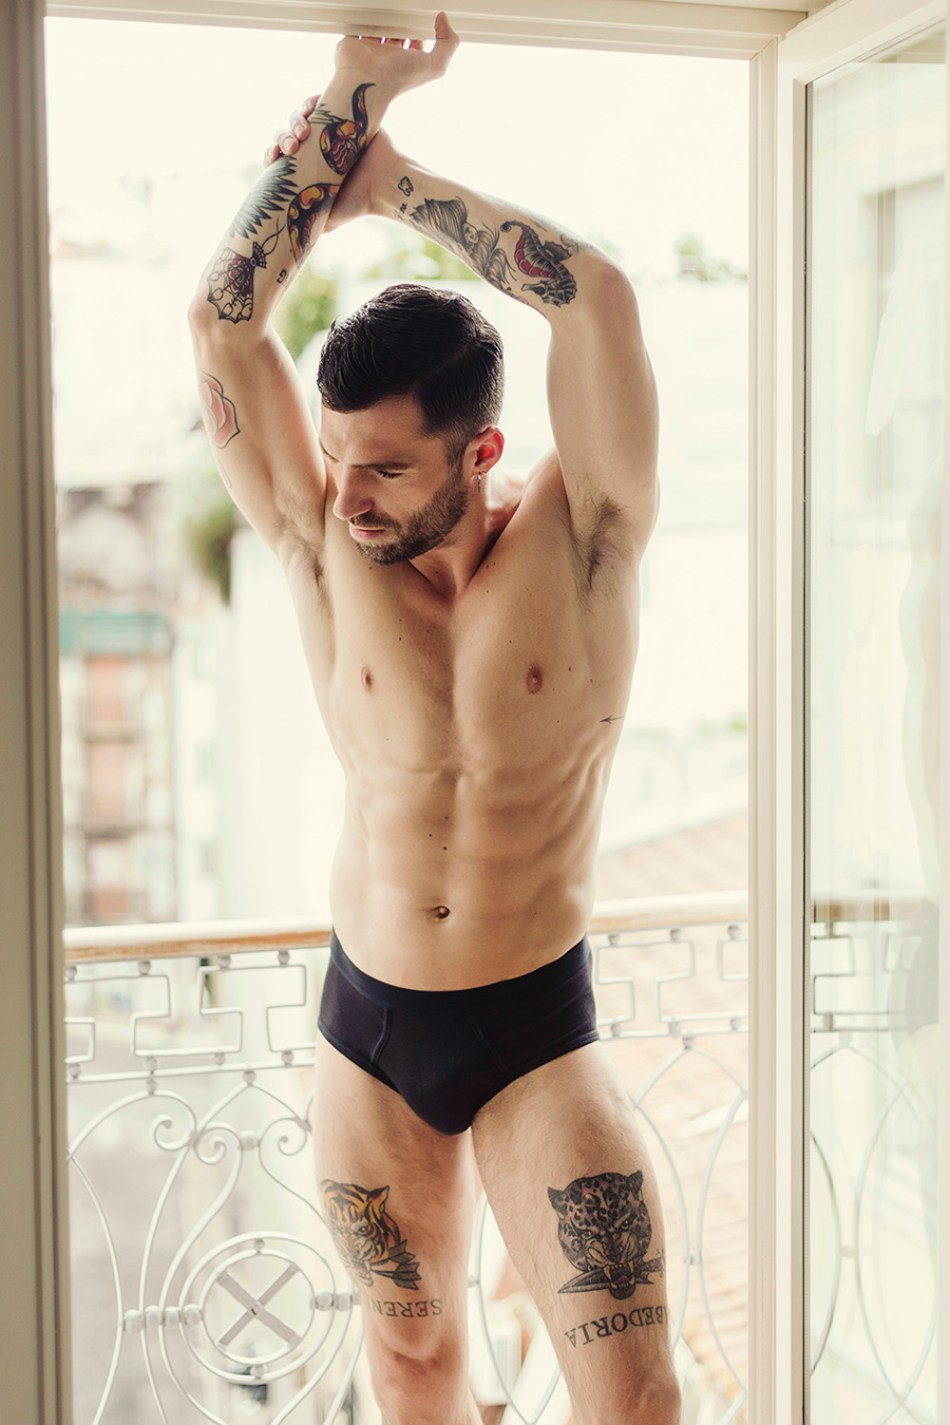 """You'd better looking for where I've got the word """"Serenidade"""" is tattooed on the beauty firm toned body of male model João Pombeiro photographed by David Velez."""